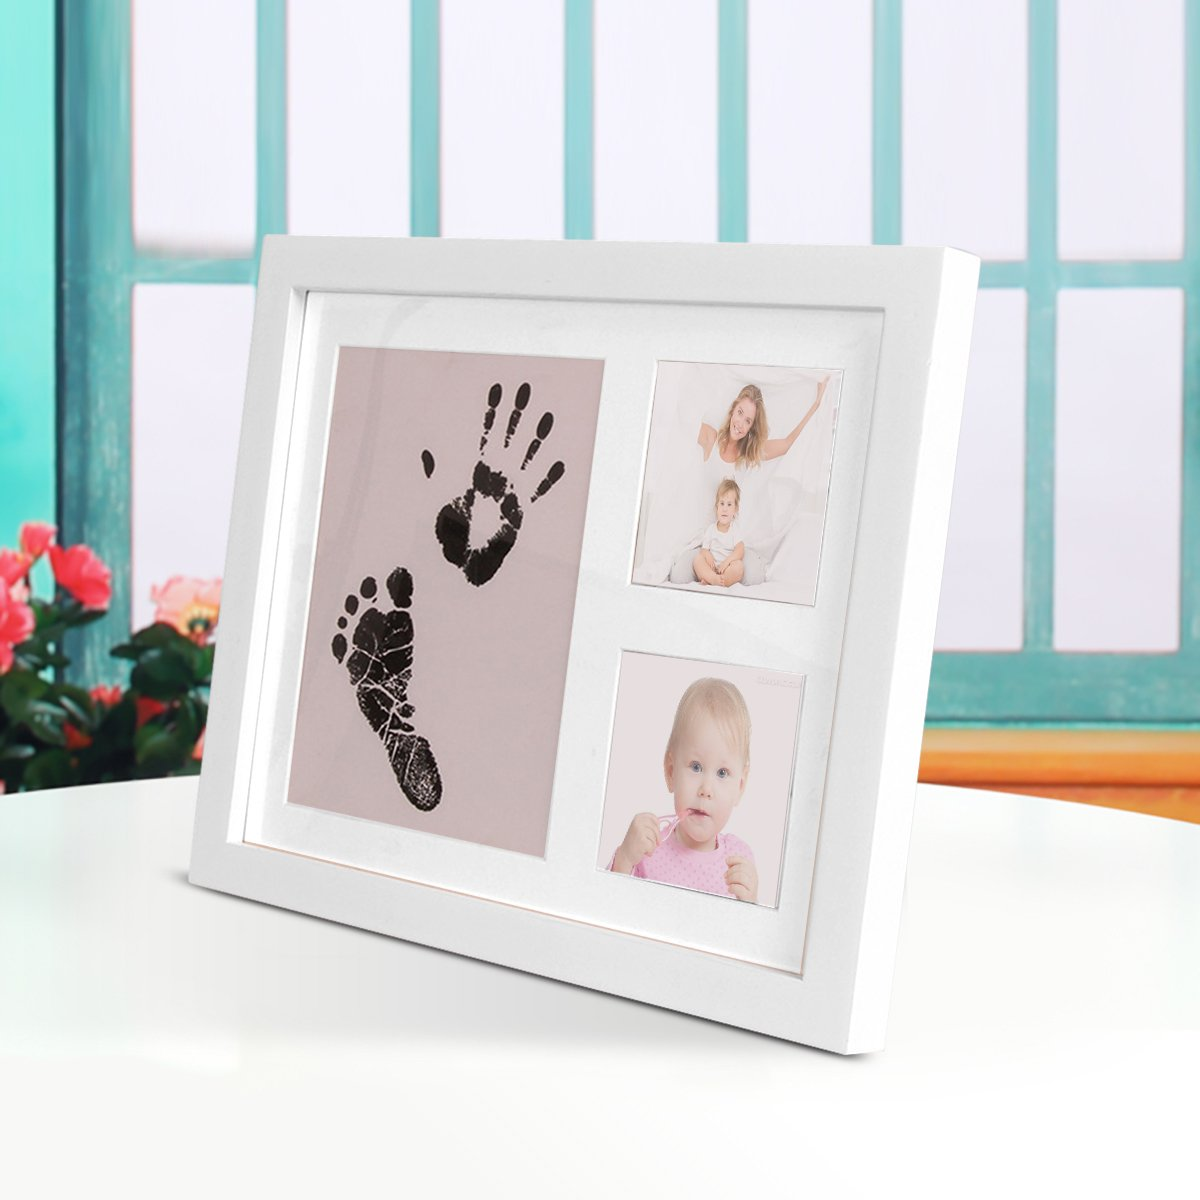 Baby Handprint and Footprint Photo Frame Kit by TopSuccess Without Ink-Touch,Safe and Non-Toxic Ink Print Kit for Baby Babyprints Inkpad Best for Newborn Baby Gifts GM10 (Black) by TopSuccess (Image #9)